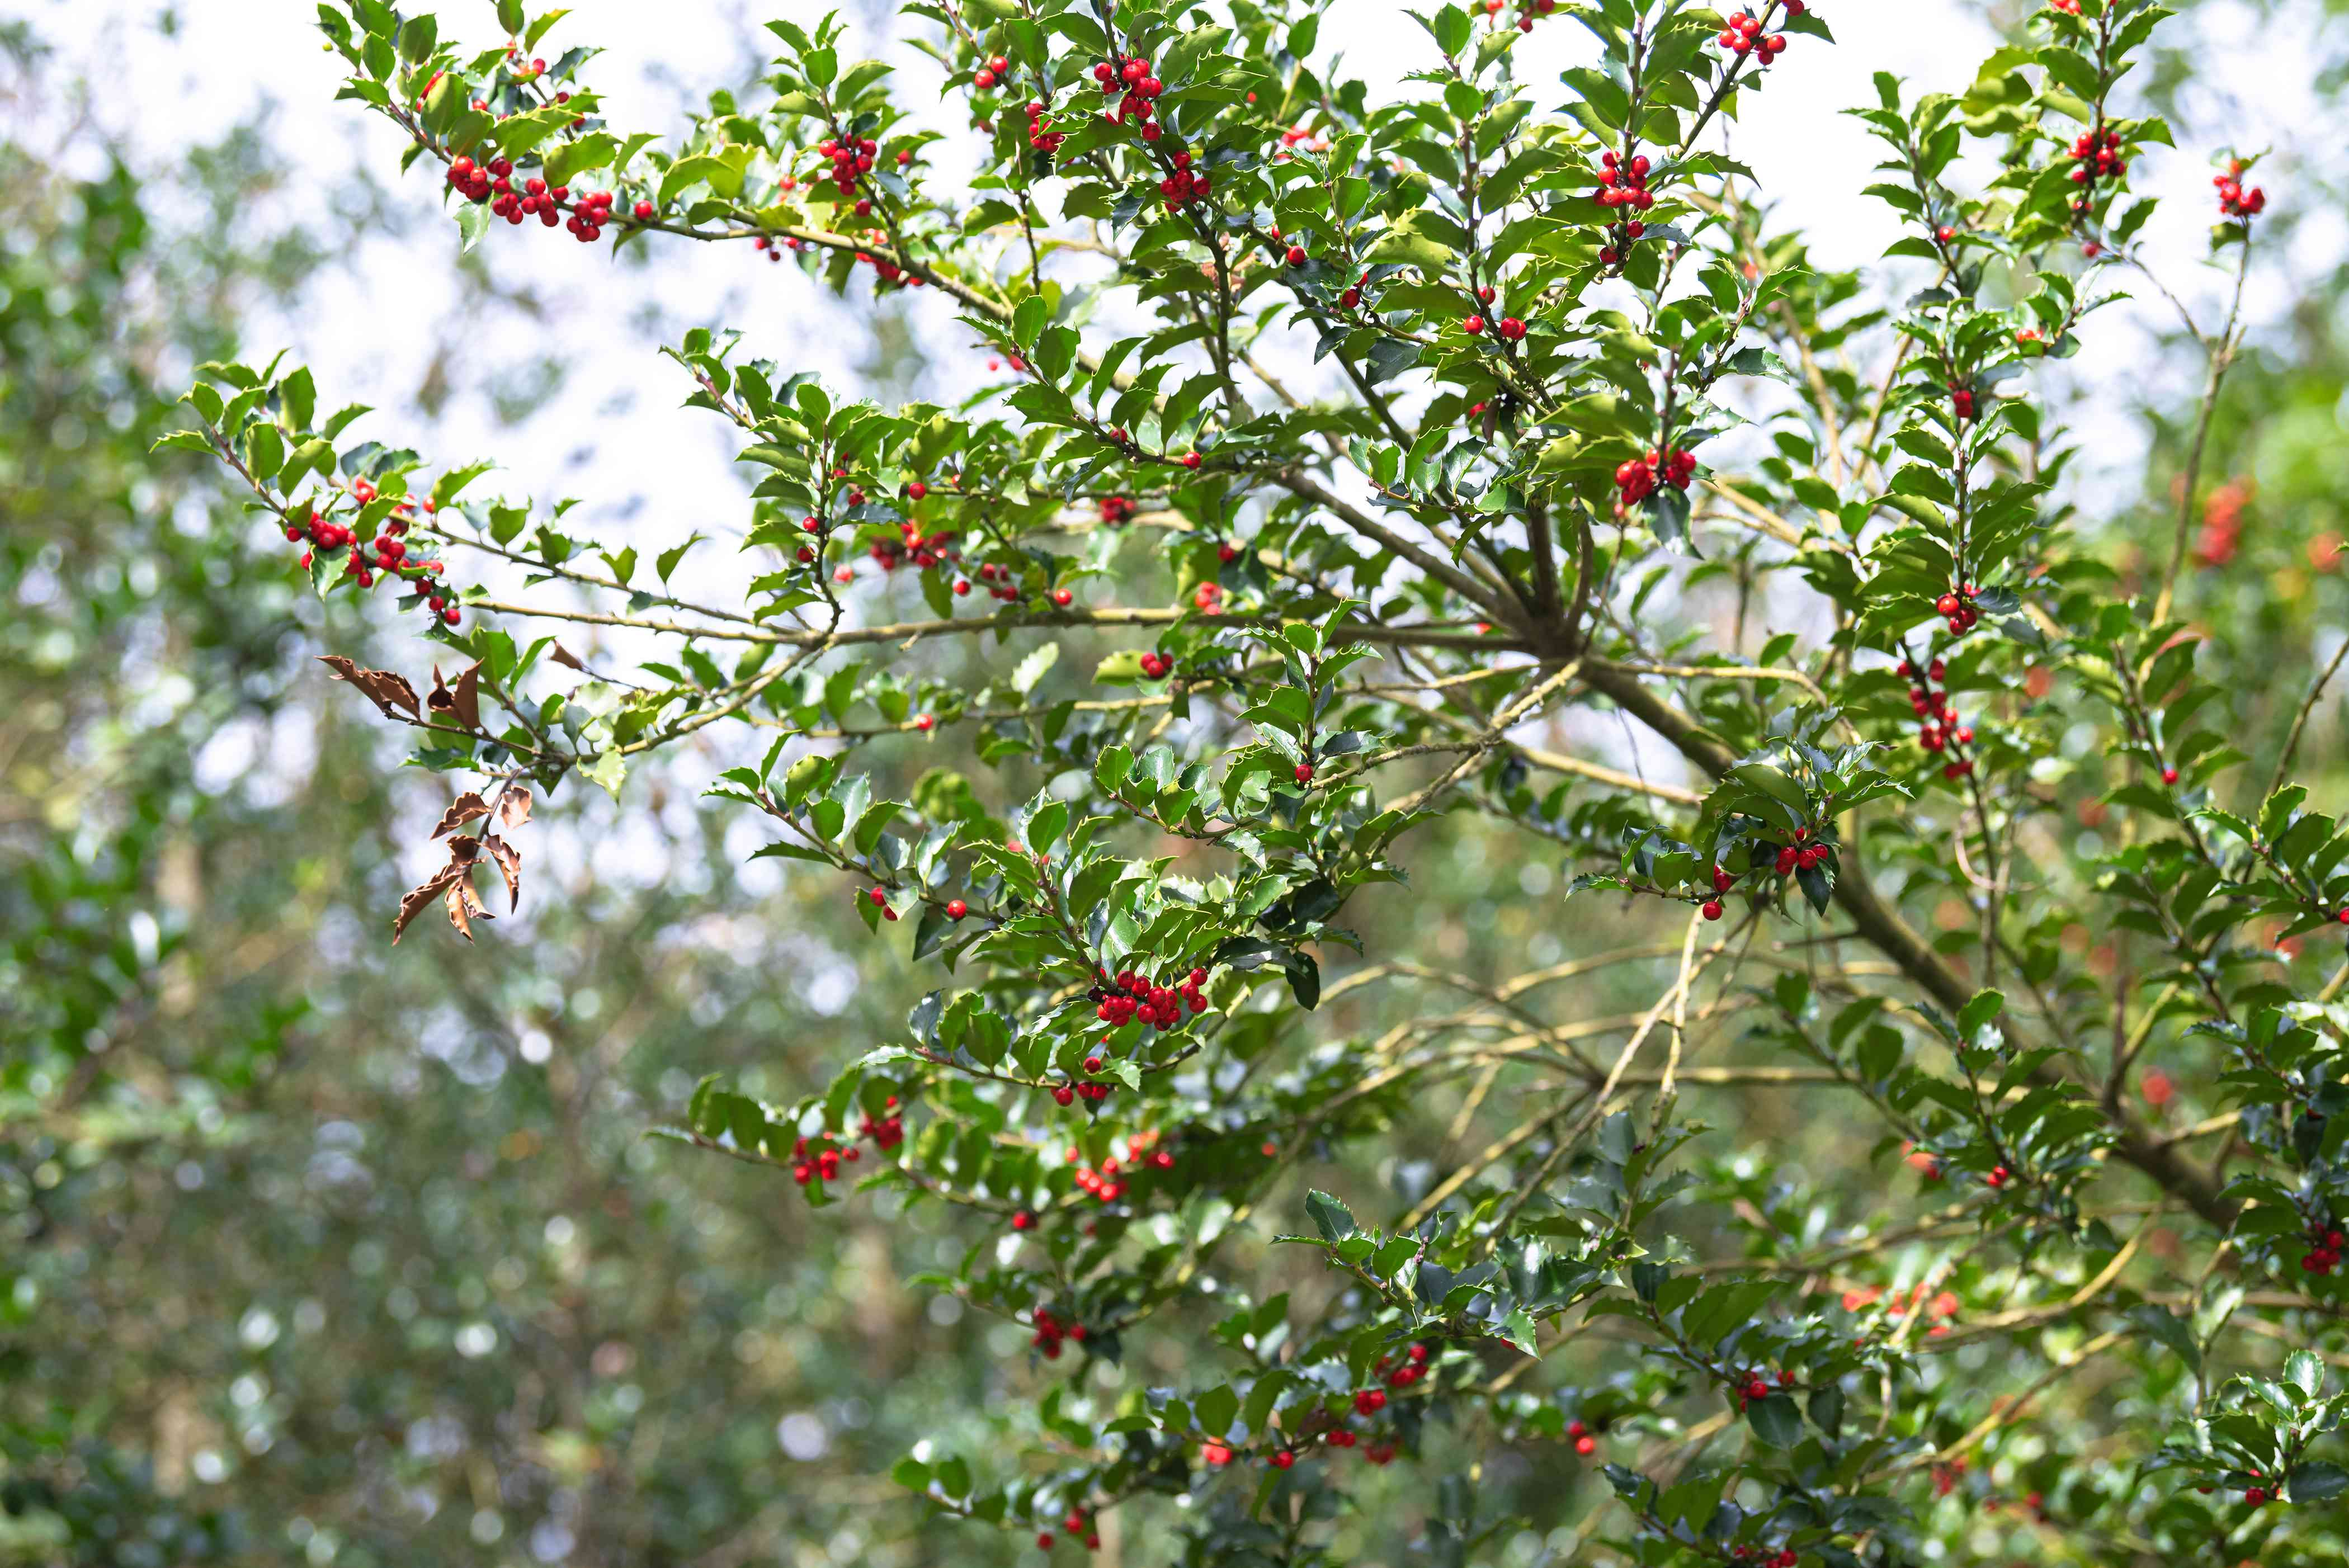 Blue princess holly shrub branches with bright red berries and small glossy leaves